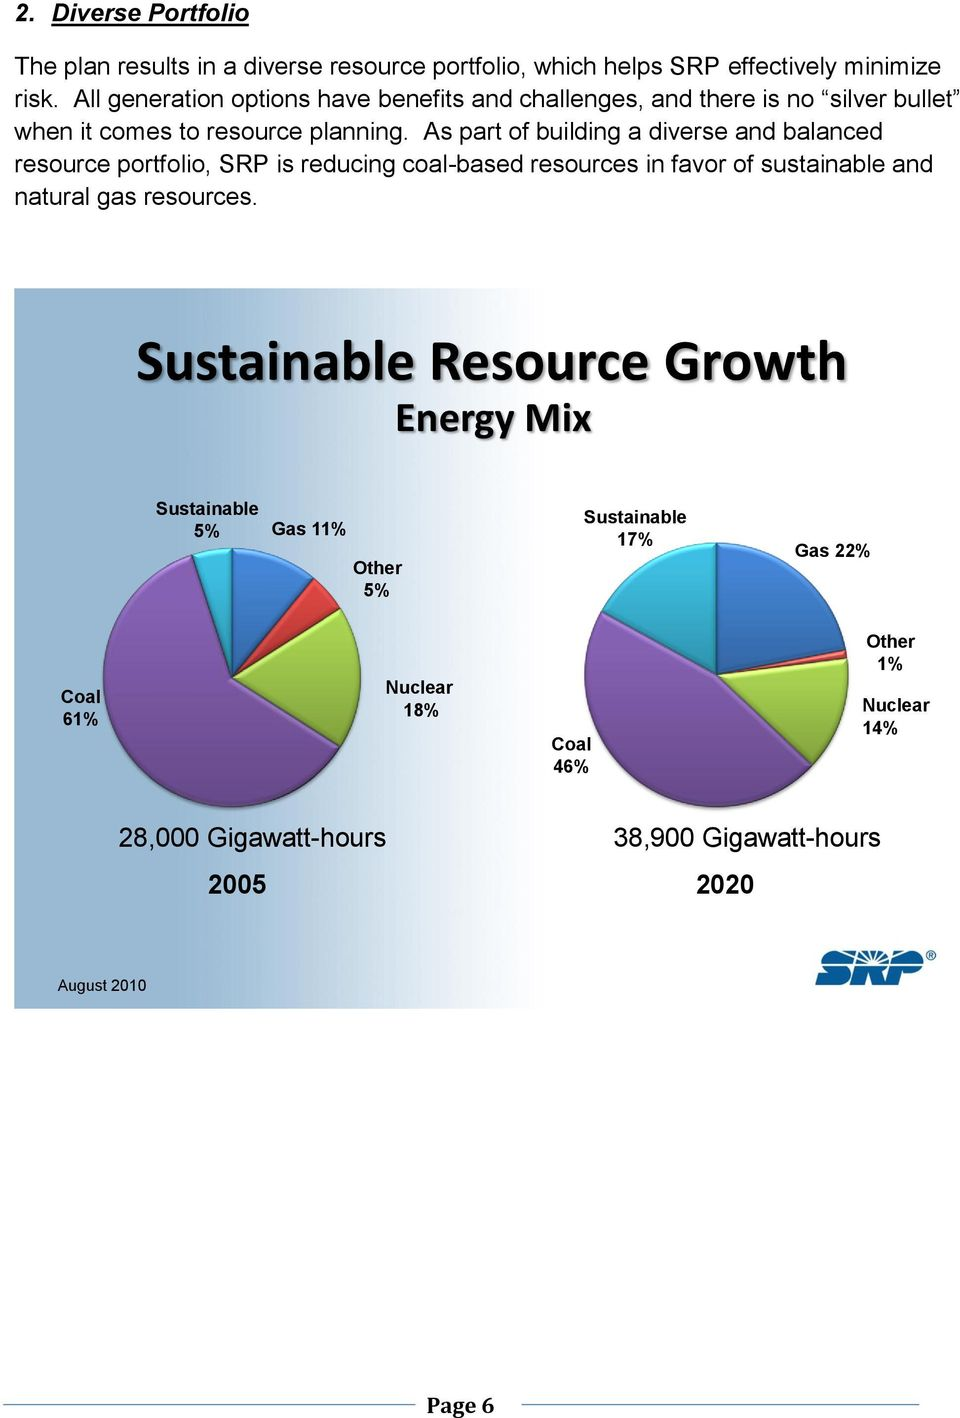 As part of building a diverse and balanced resource portfolio, SRP is reducing coal-based resources in favor of sustainable and natural gas